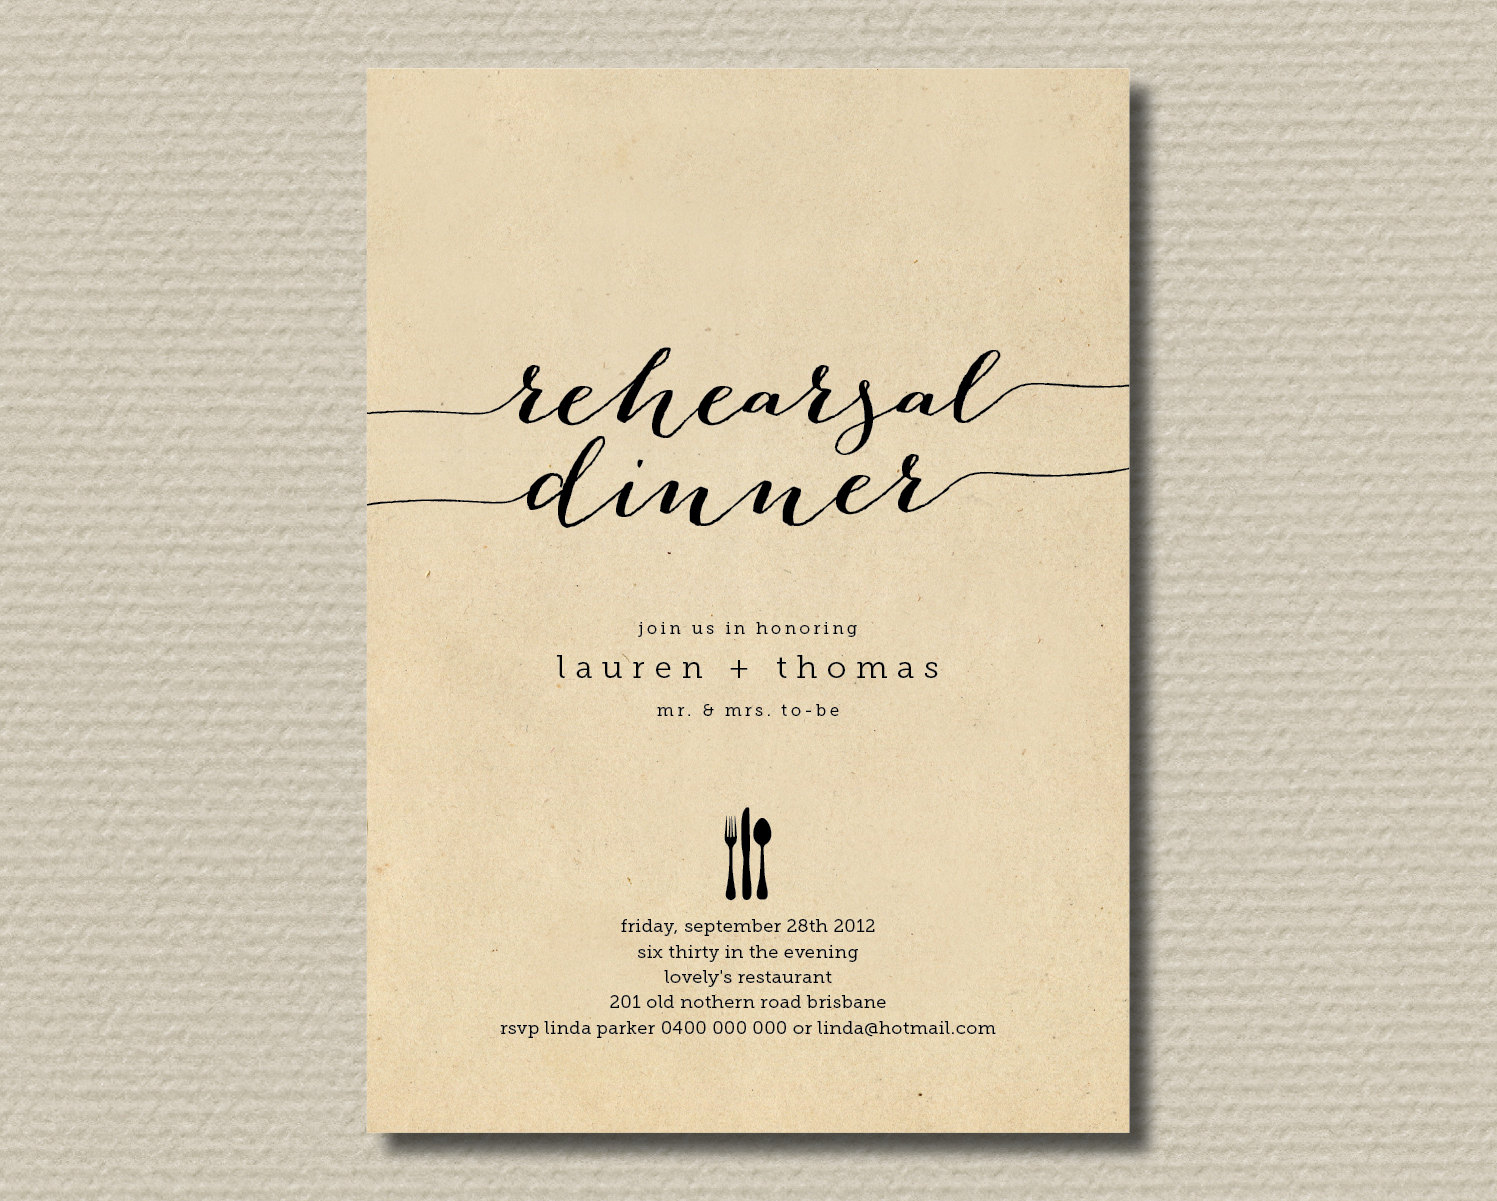 10 Affordable Places to Find Rehearsal Dinner Invitations – BestBride101